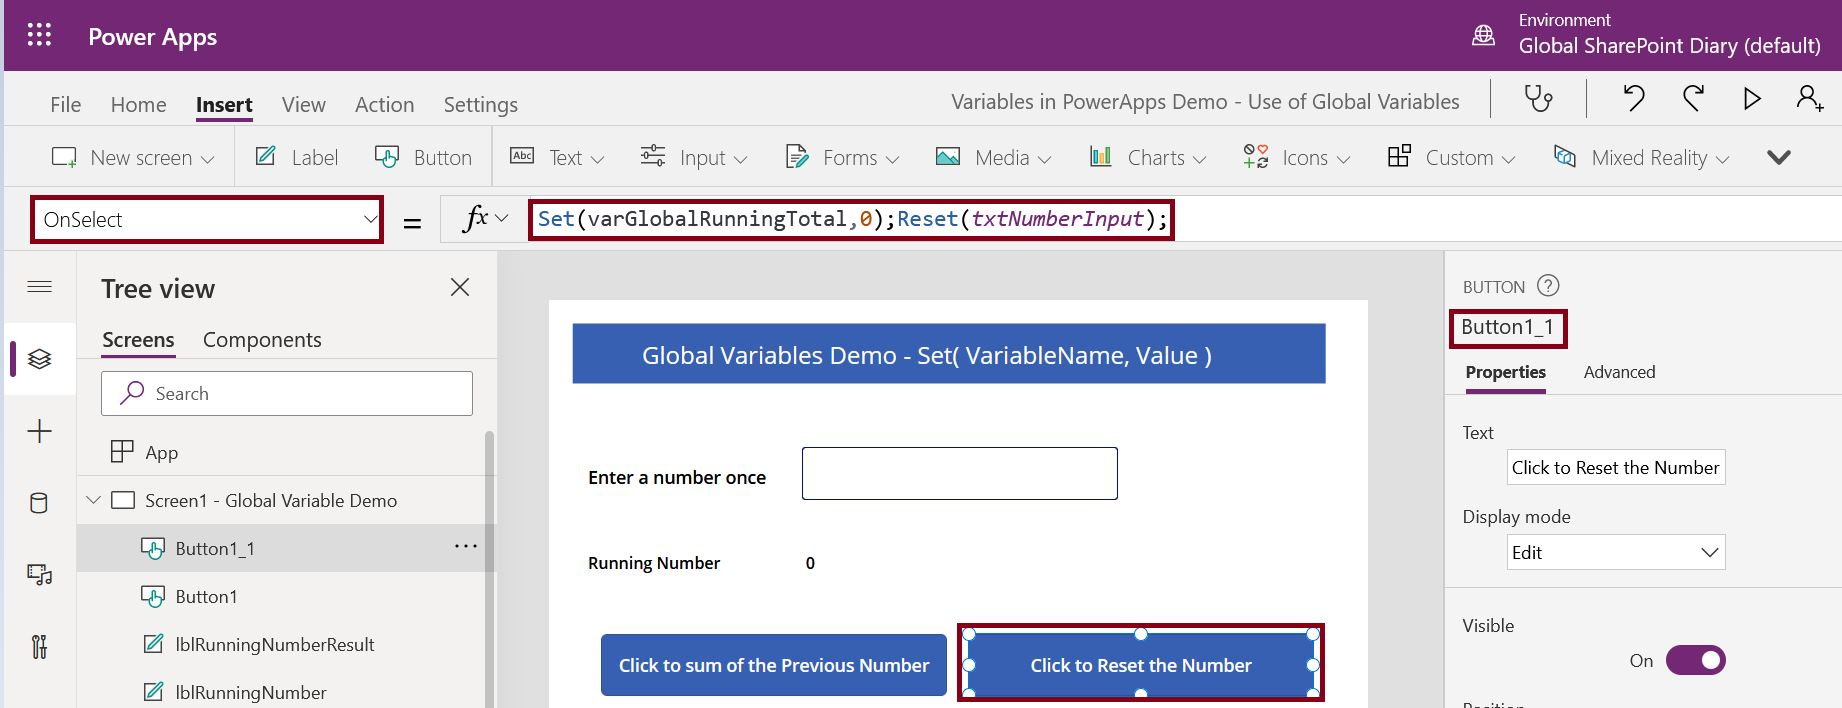 How to reset controls in PowerApps